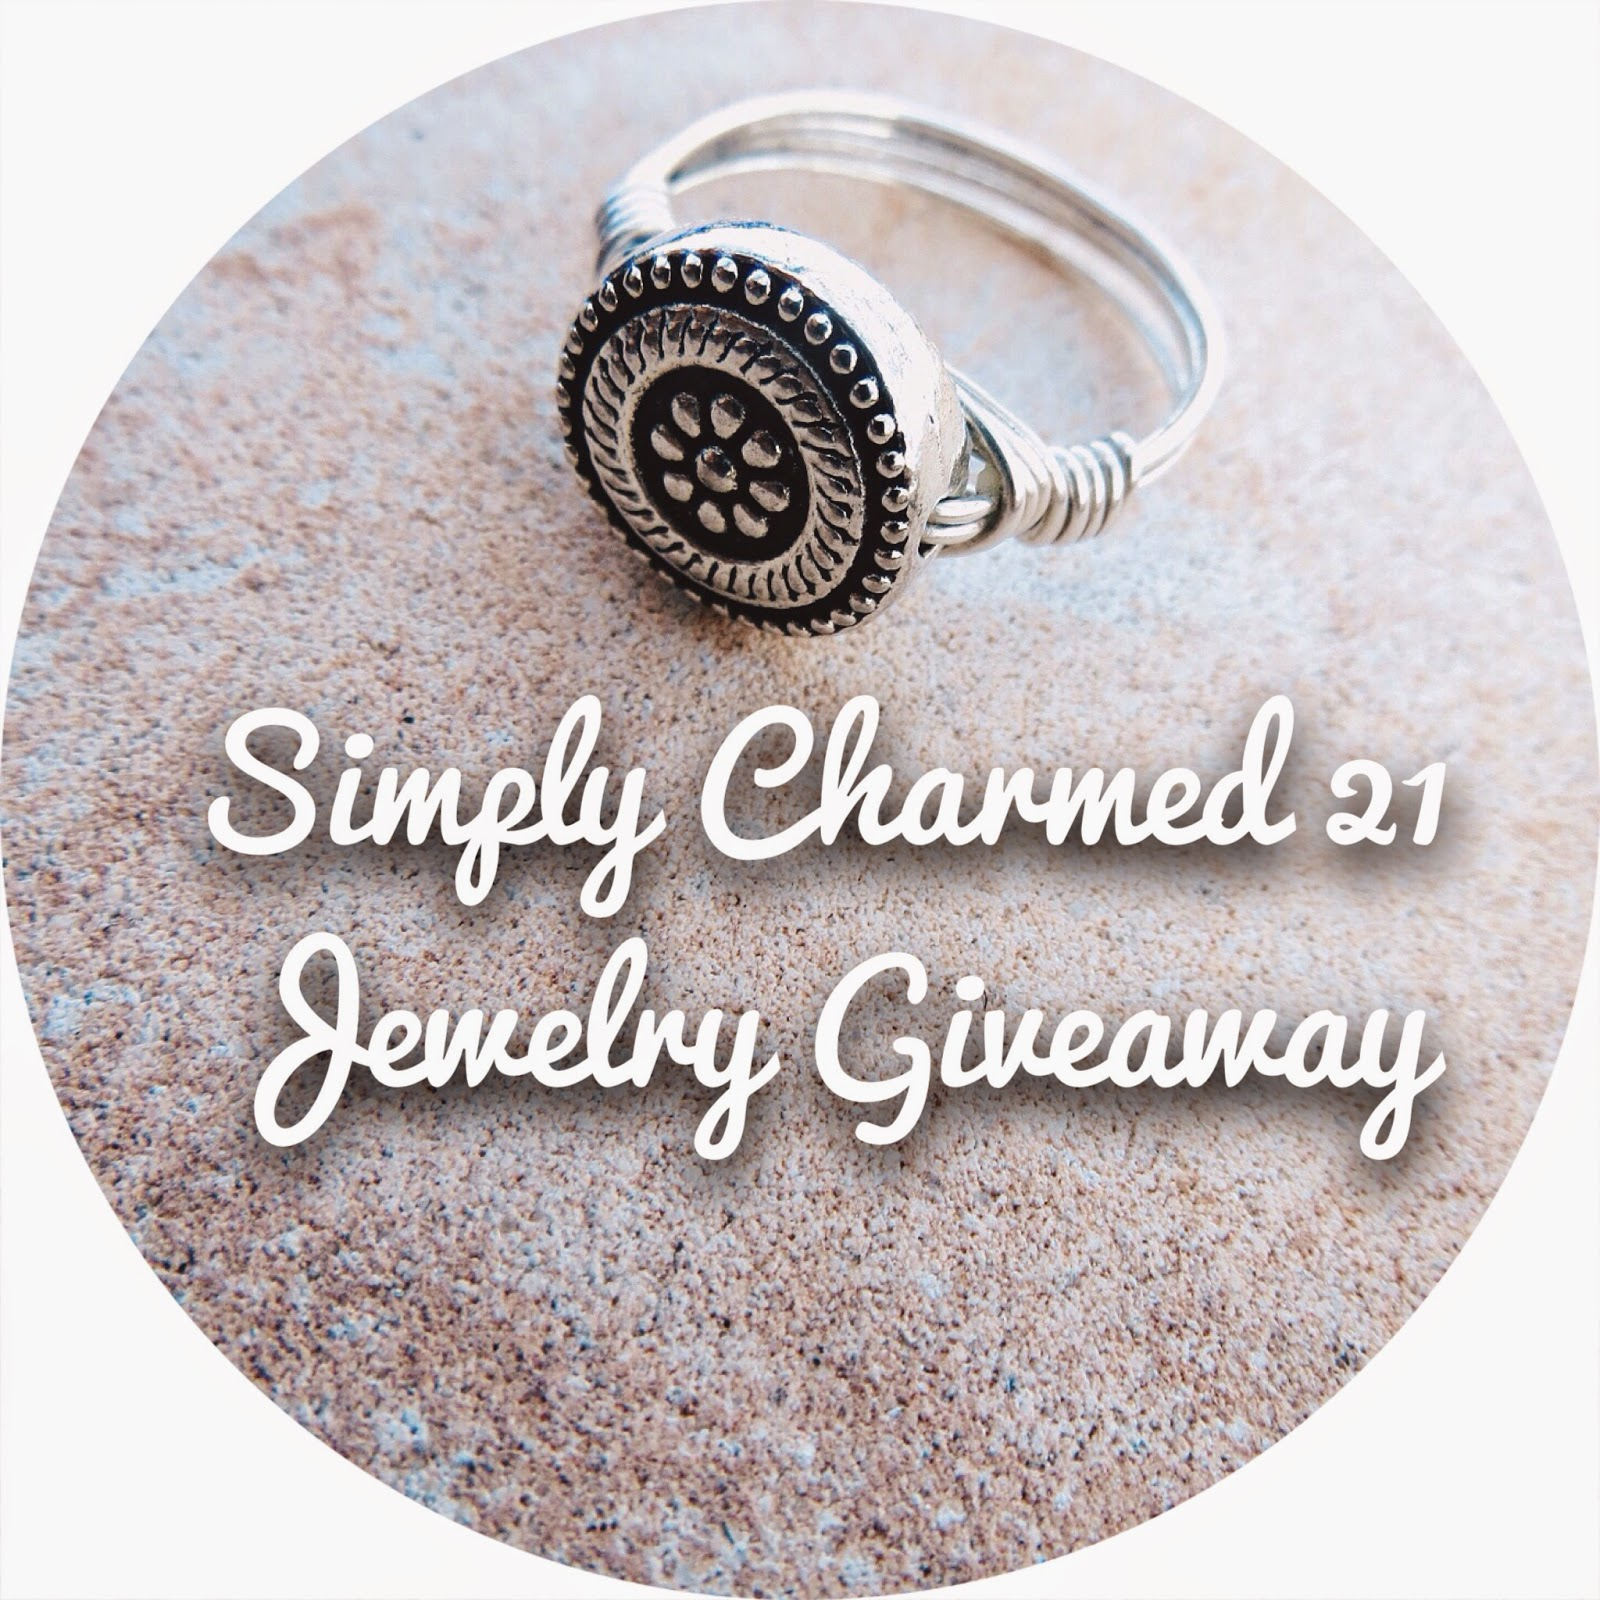 simply charmed 21, simply charmed 21, handmade jewelry, etsy, giveaway, contest, freebies, sweepstakes, freebie friday